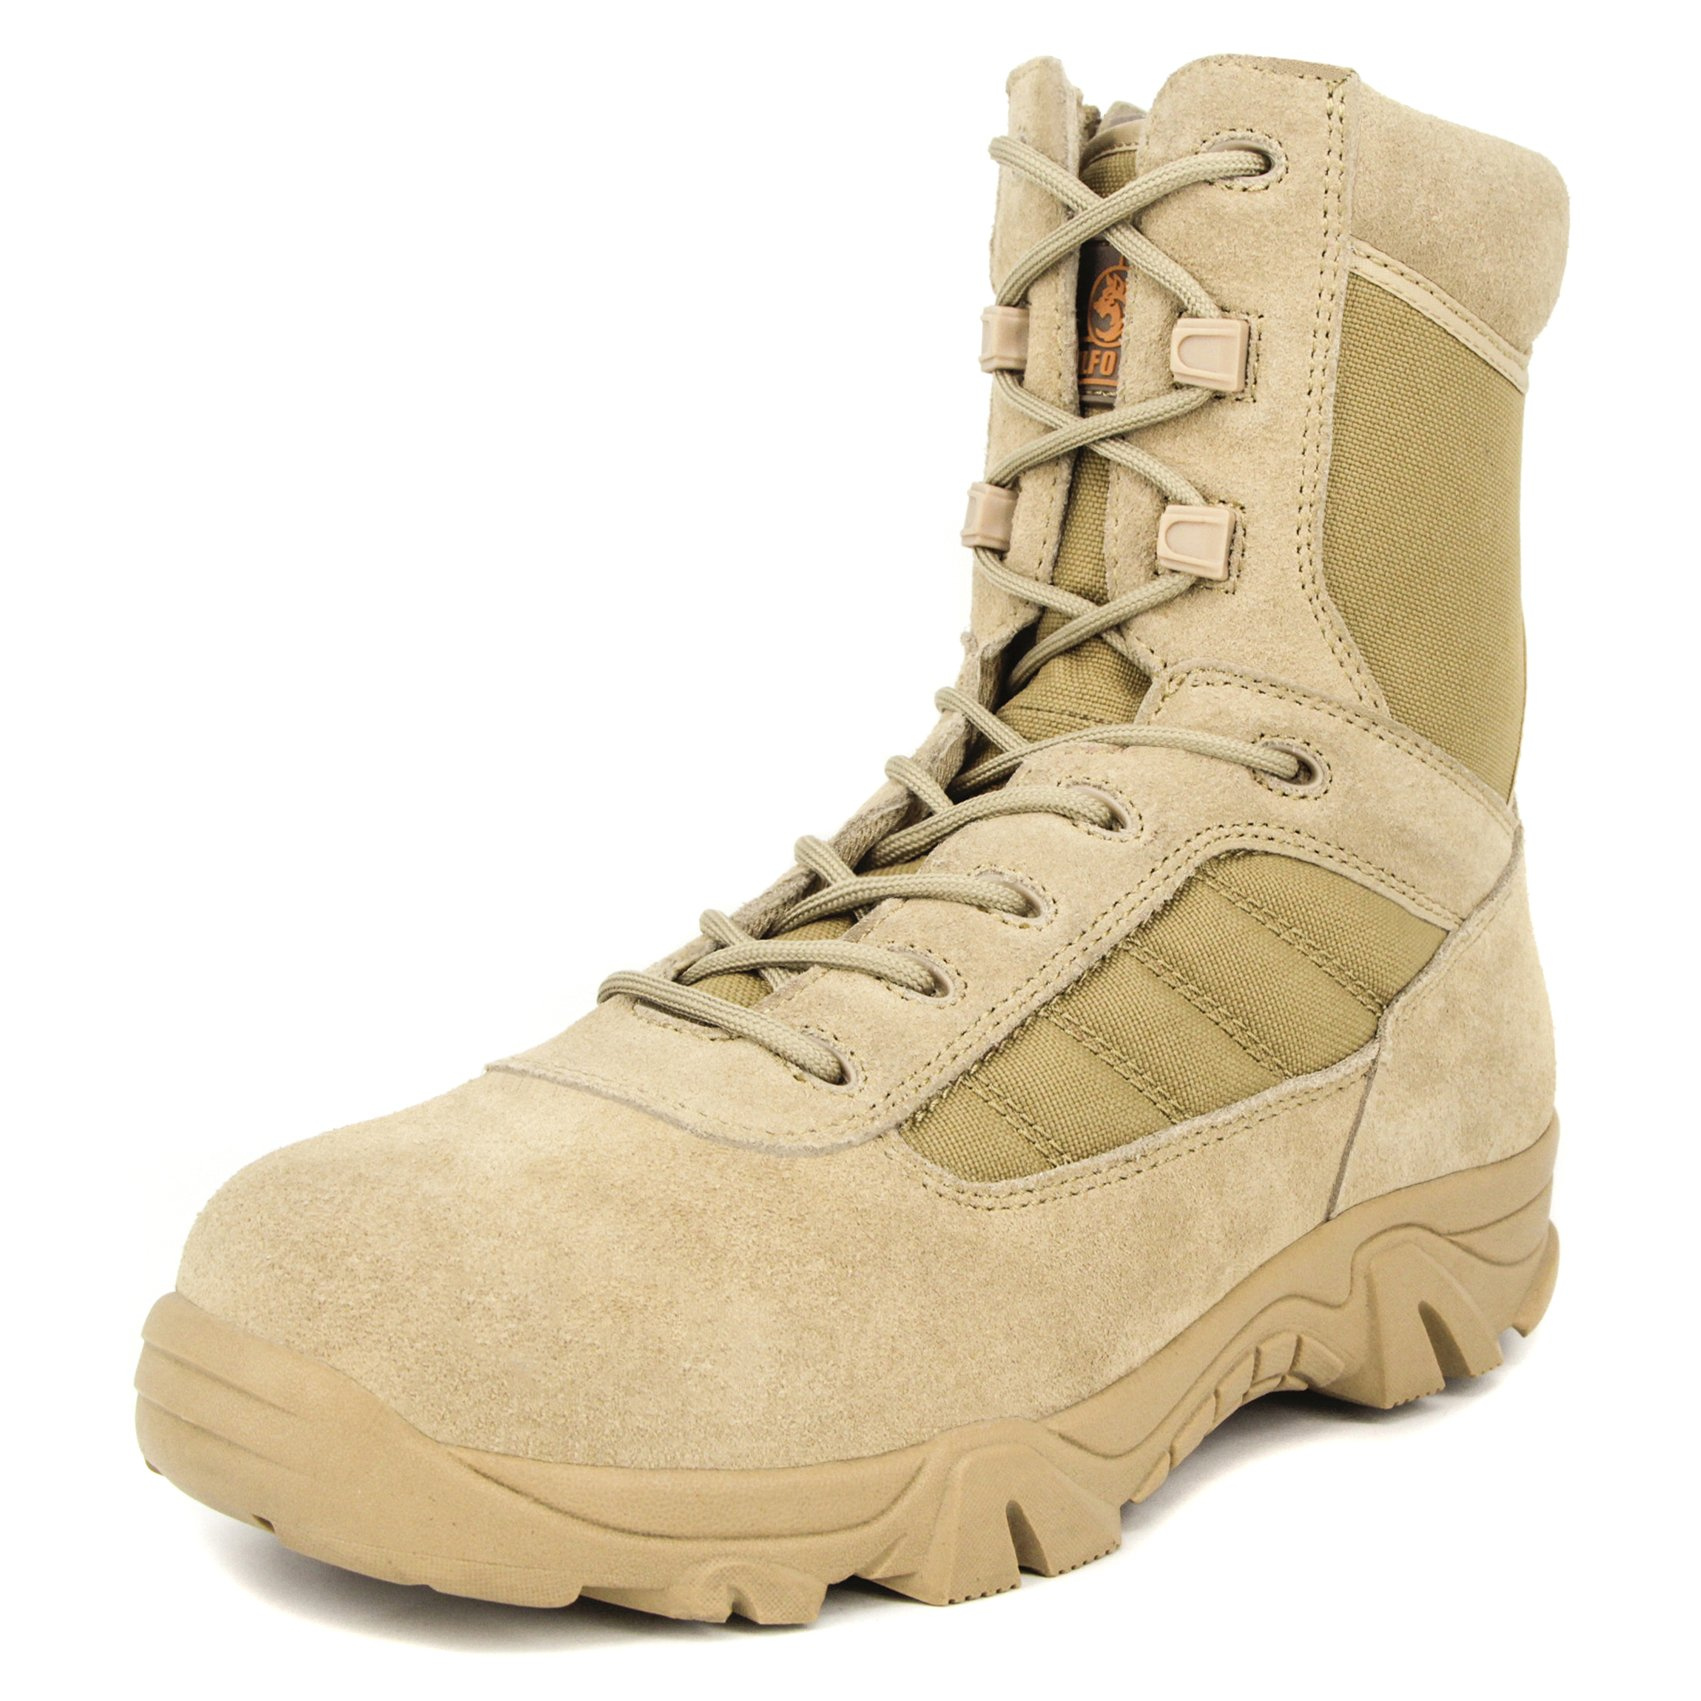 Milforce Men's 8 inch Military Tactical Boots Combat Desert Duty Work Shoes with Side Zipper (10 D(M) US, Sand)